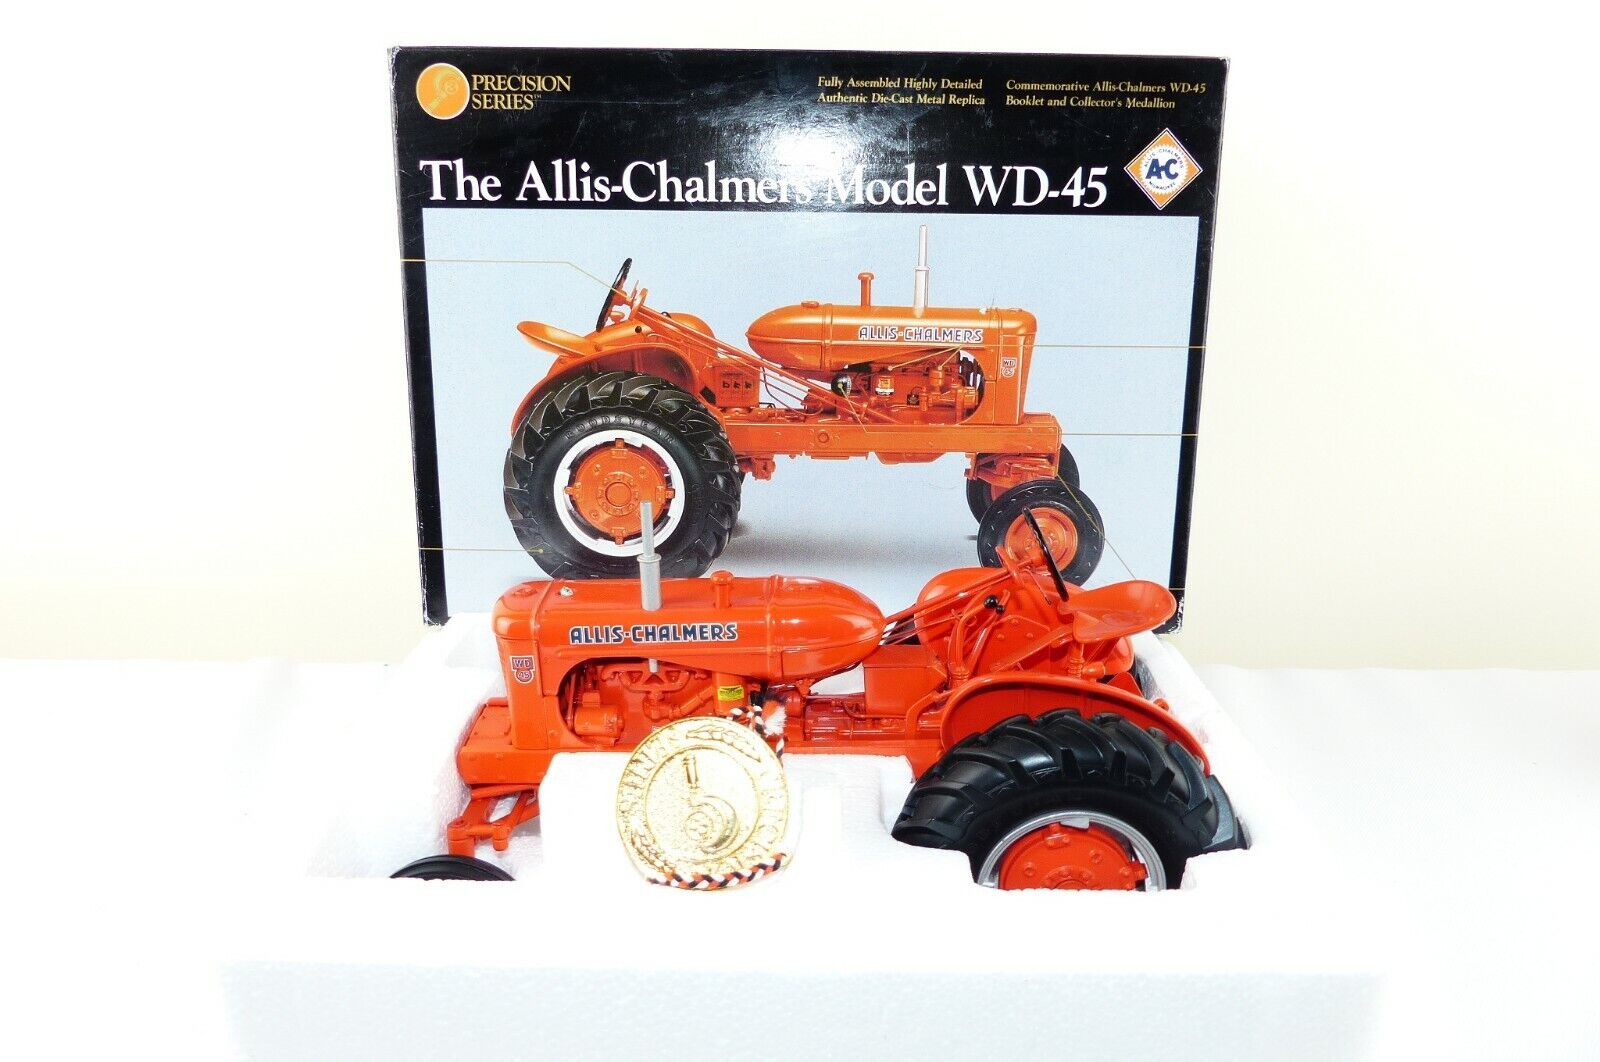 Ertl Precision series No 2253 is the Allis Chalmers WD-45 4 wheeled edition VNMB